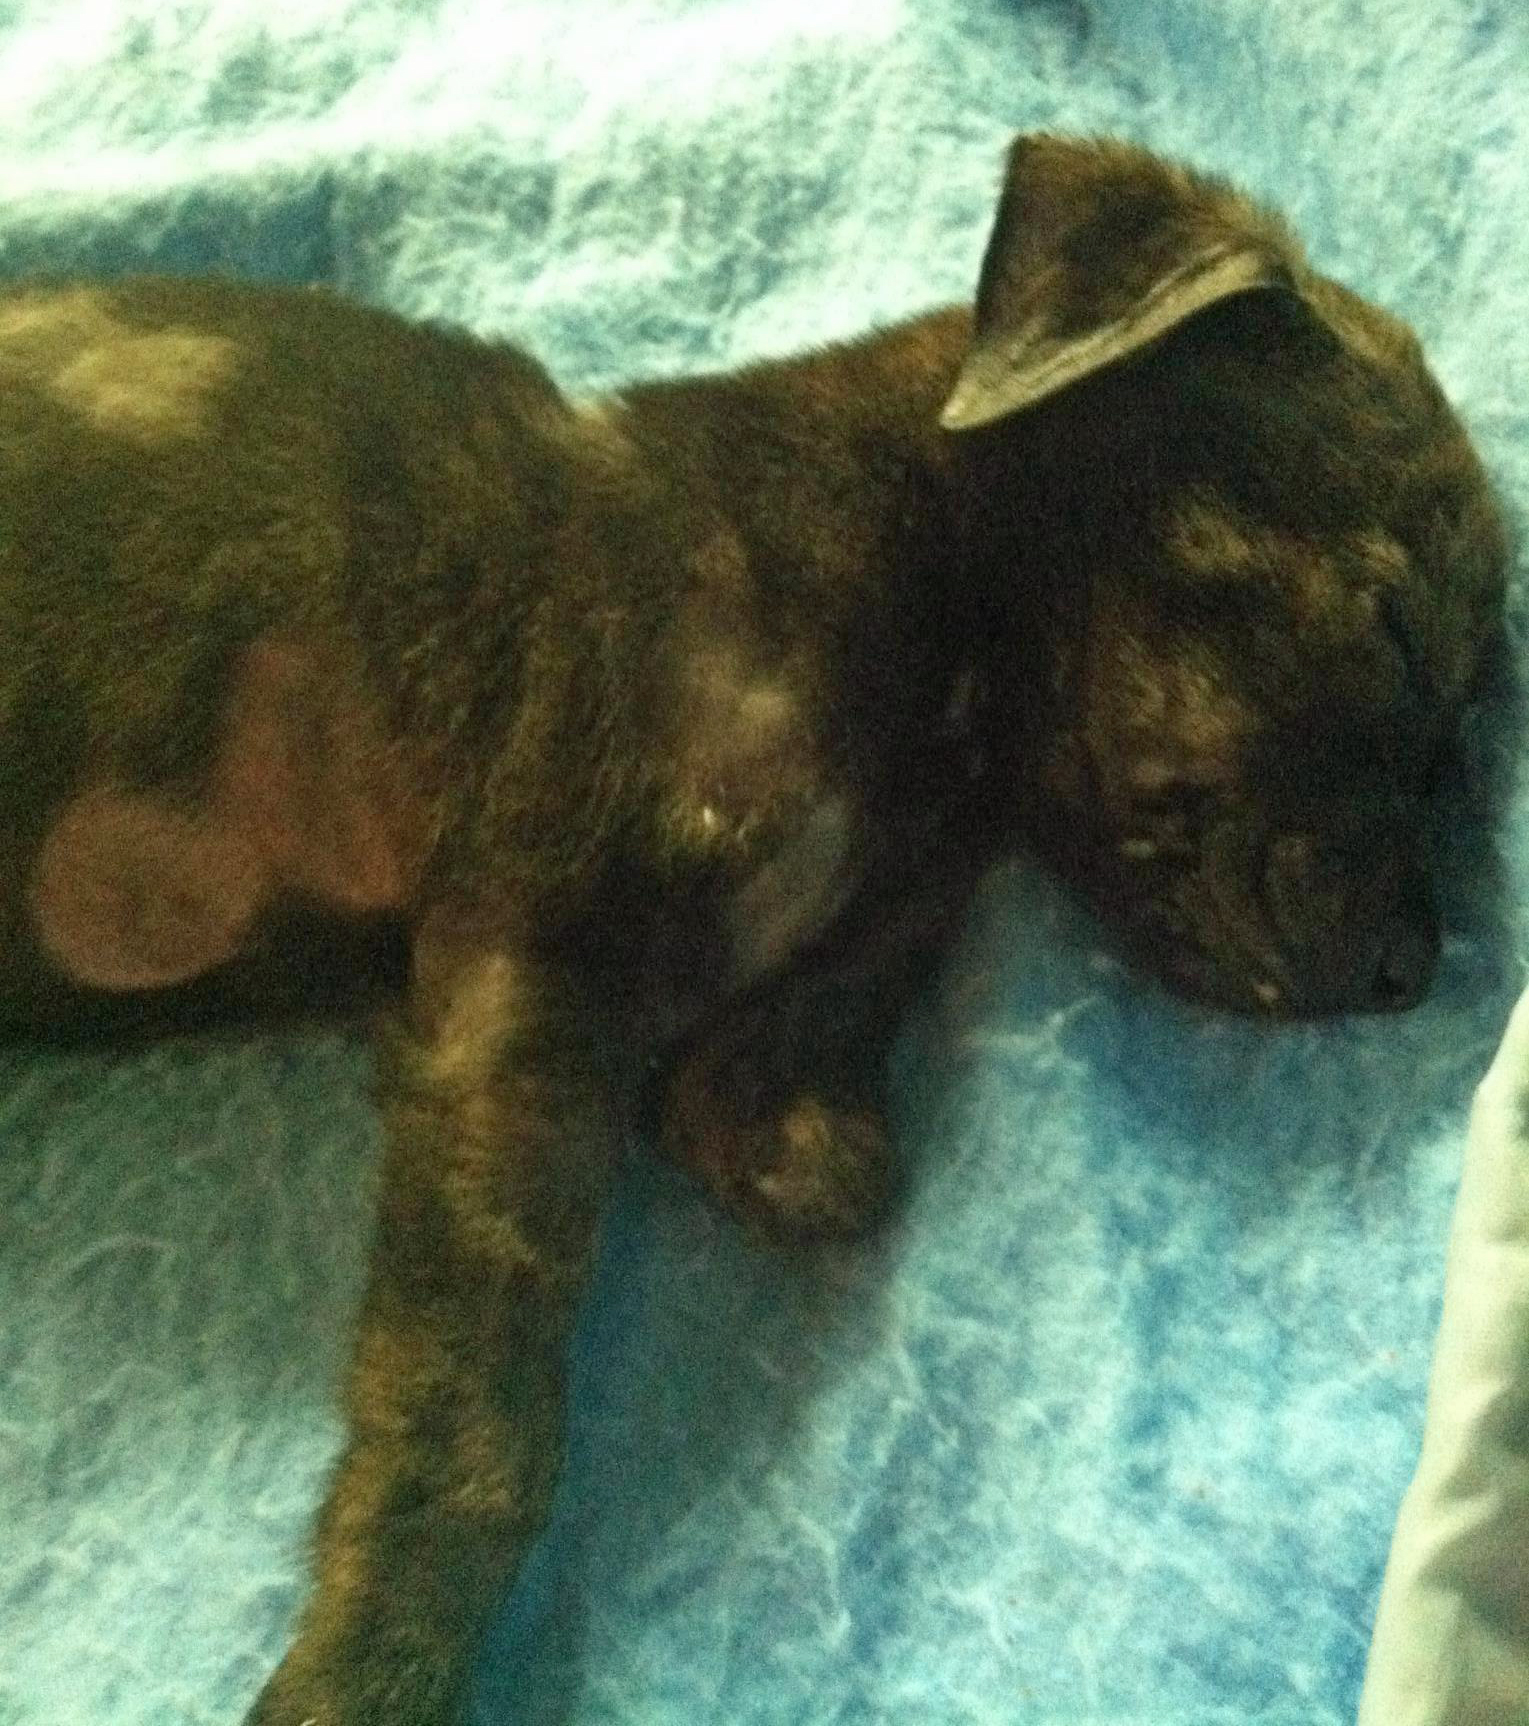 Aggie was missing a limb and suffering from a staph infection.